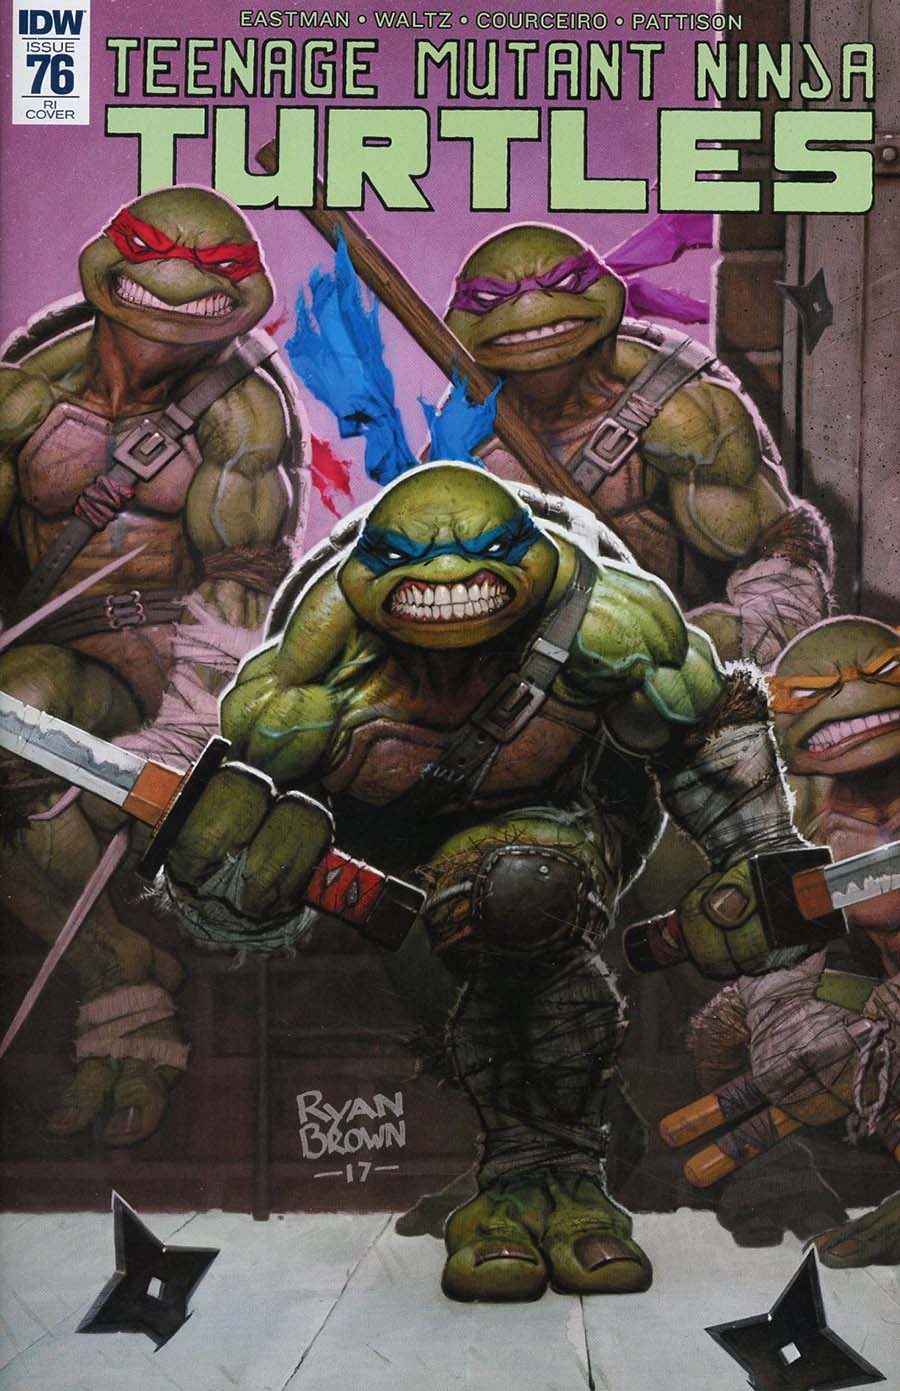 Teenage Mutant Ninja Turtles Vol 5 #76 Cover C Incentive Ryan Brown Variant Cover